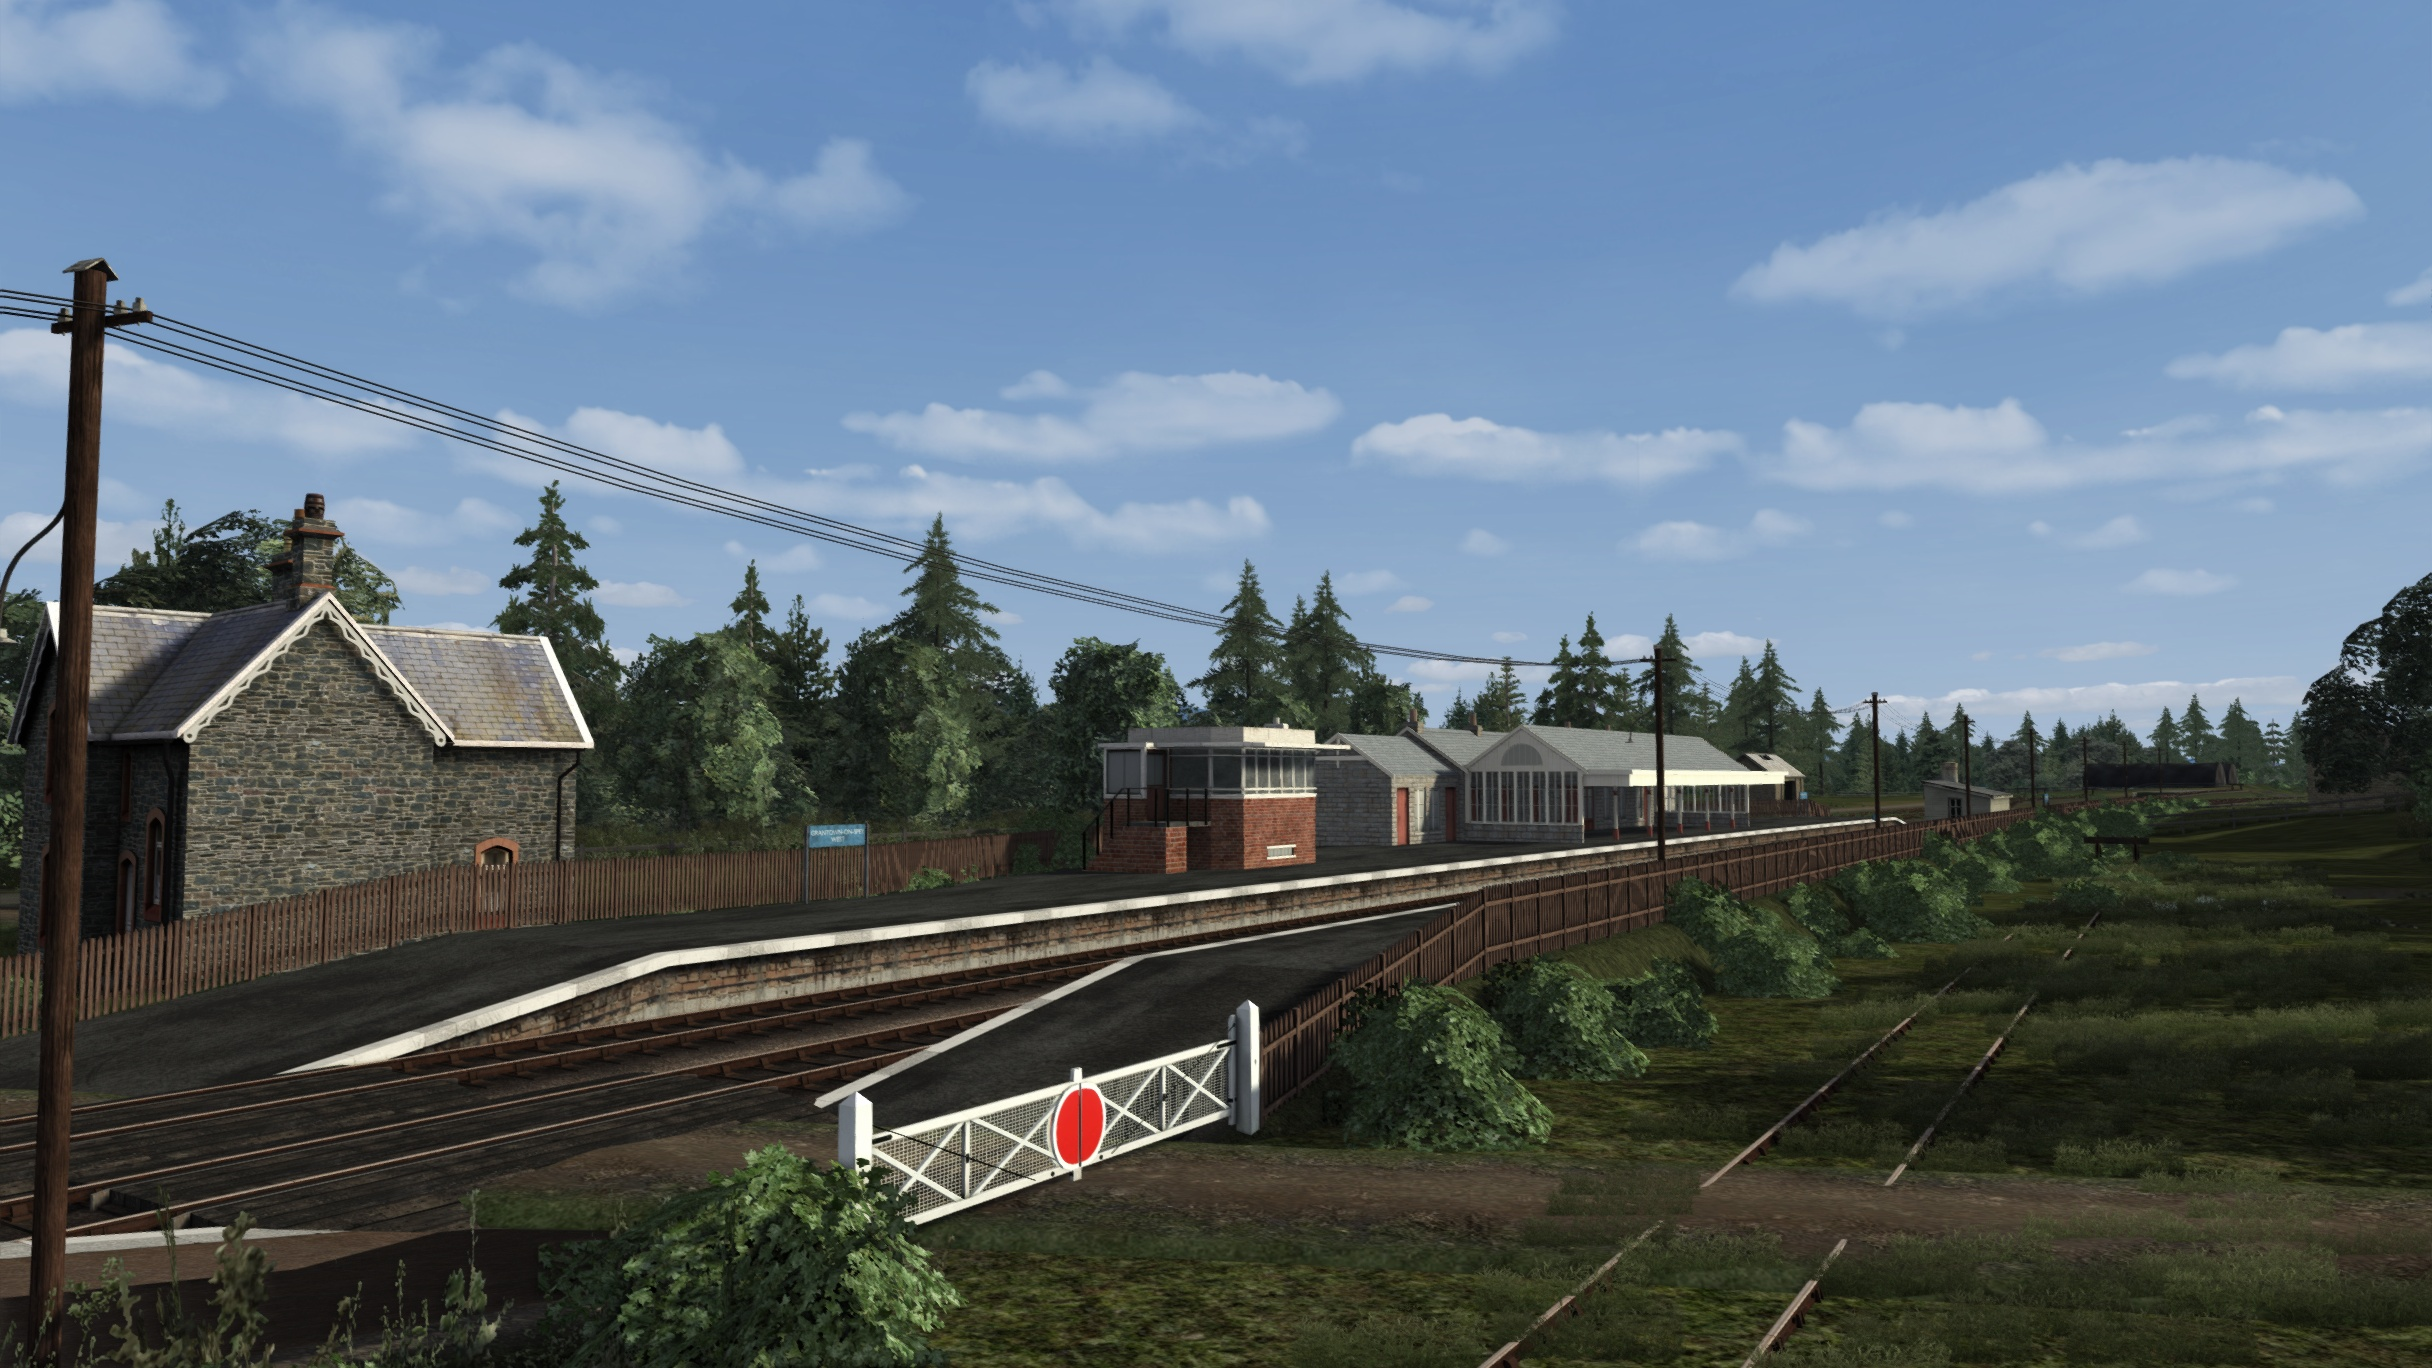 Introducing the Dava Line: Aviemore – Forres